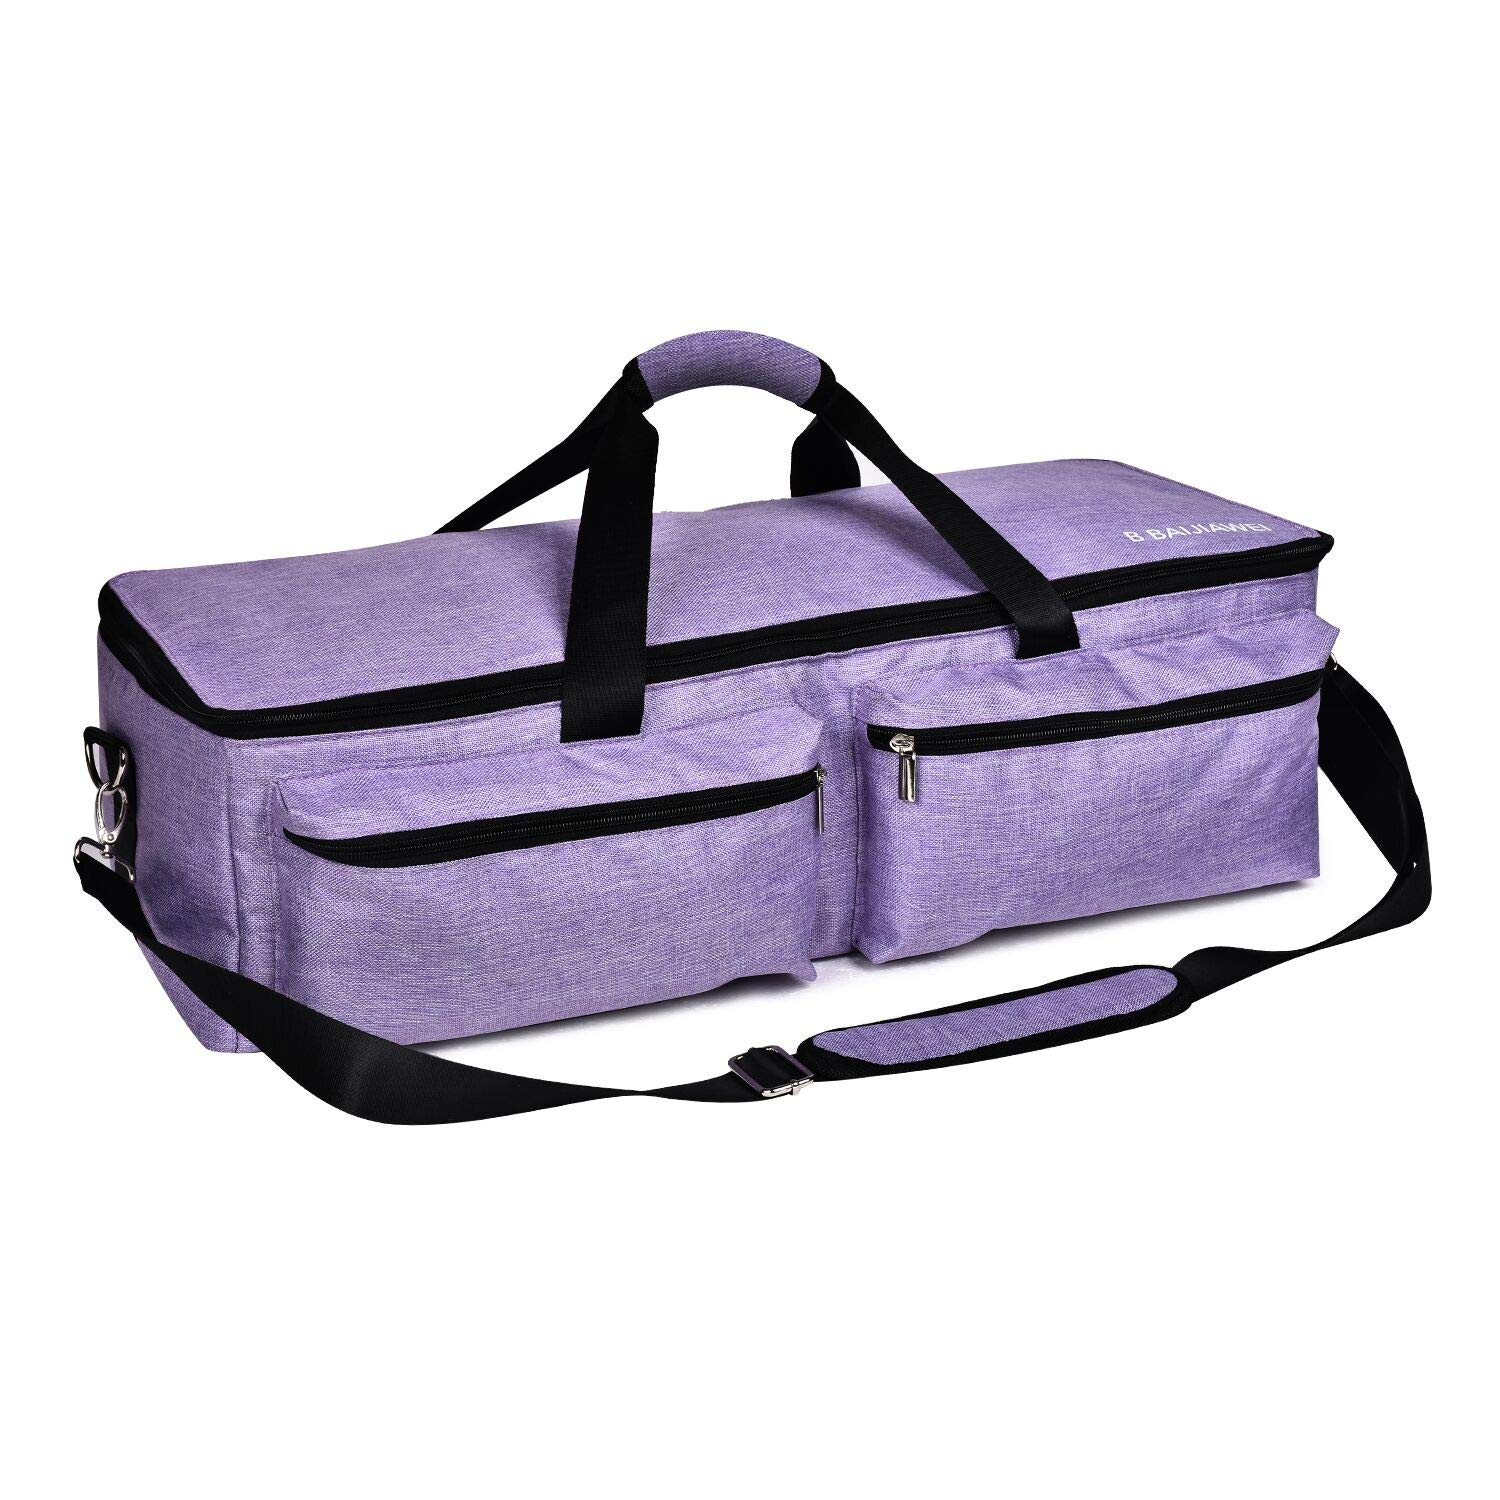 B BAIJIAWEI Carrying Bags for Cricut Explore - Cricut Accessories Storage Bag, Travel Bag for Cricut Explore Air, Cricut Explore Air 2, Cricut Maker (Purple)